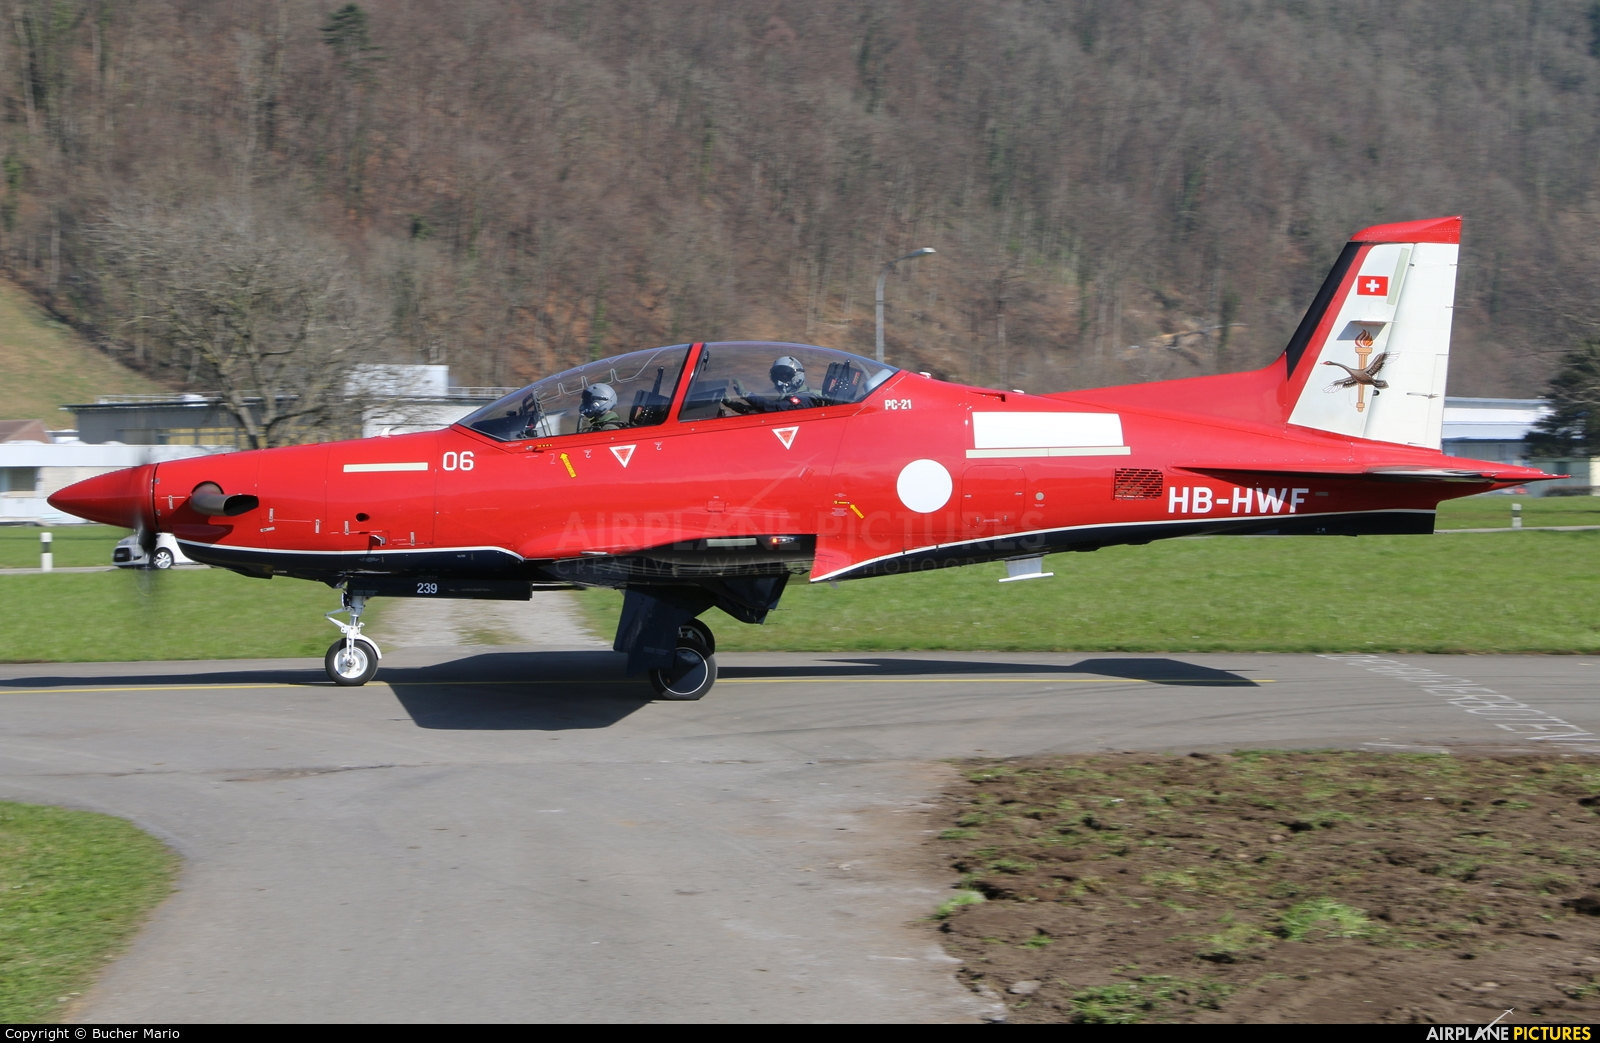 Royal Australian Air Force HB-HWF aircraft at Buochs